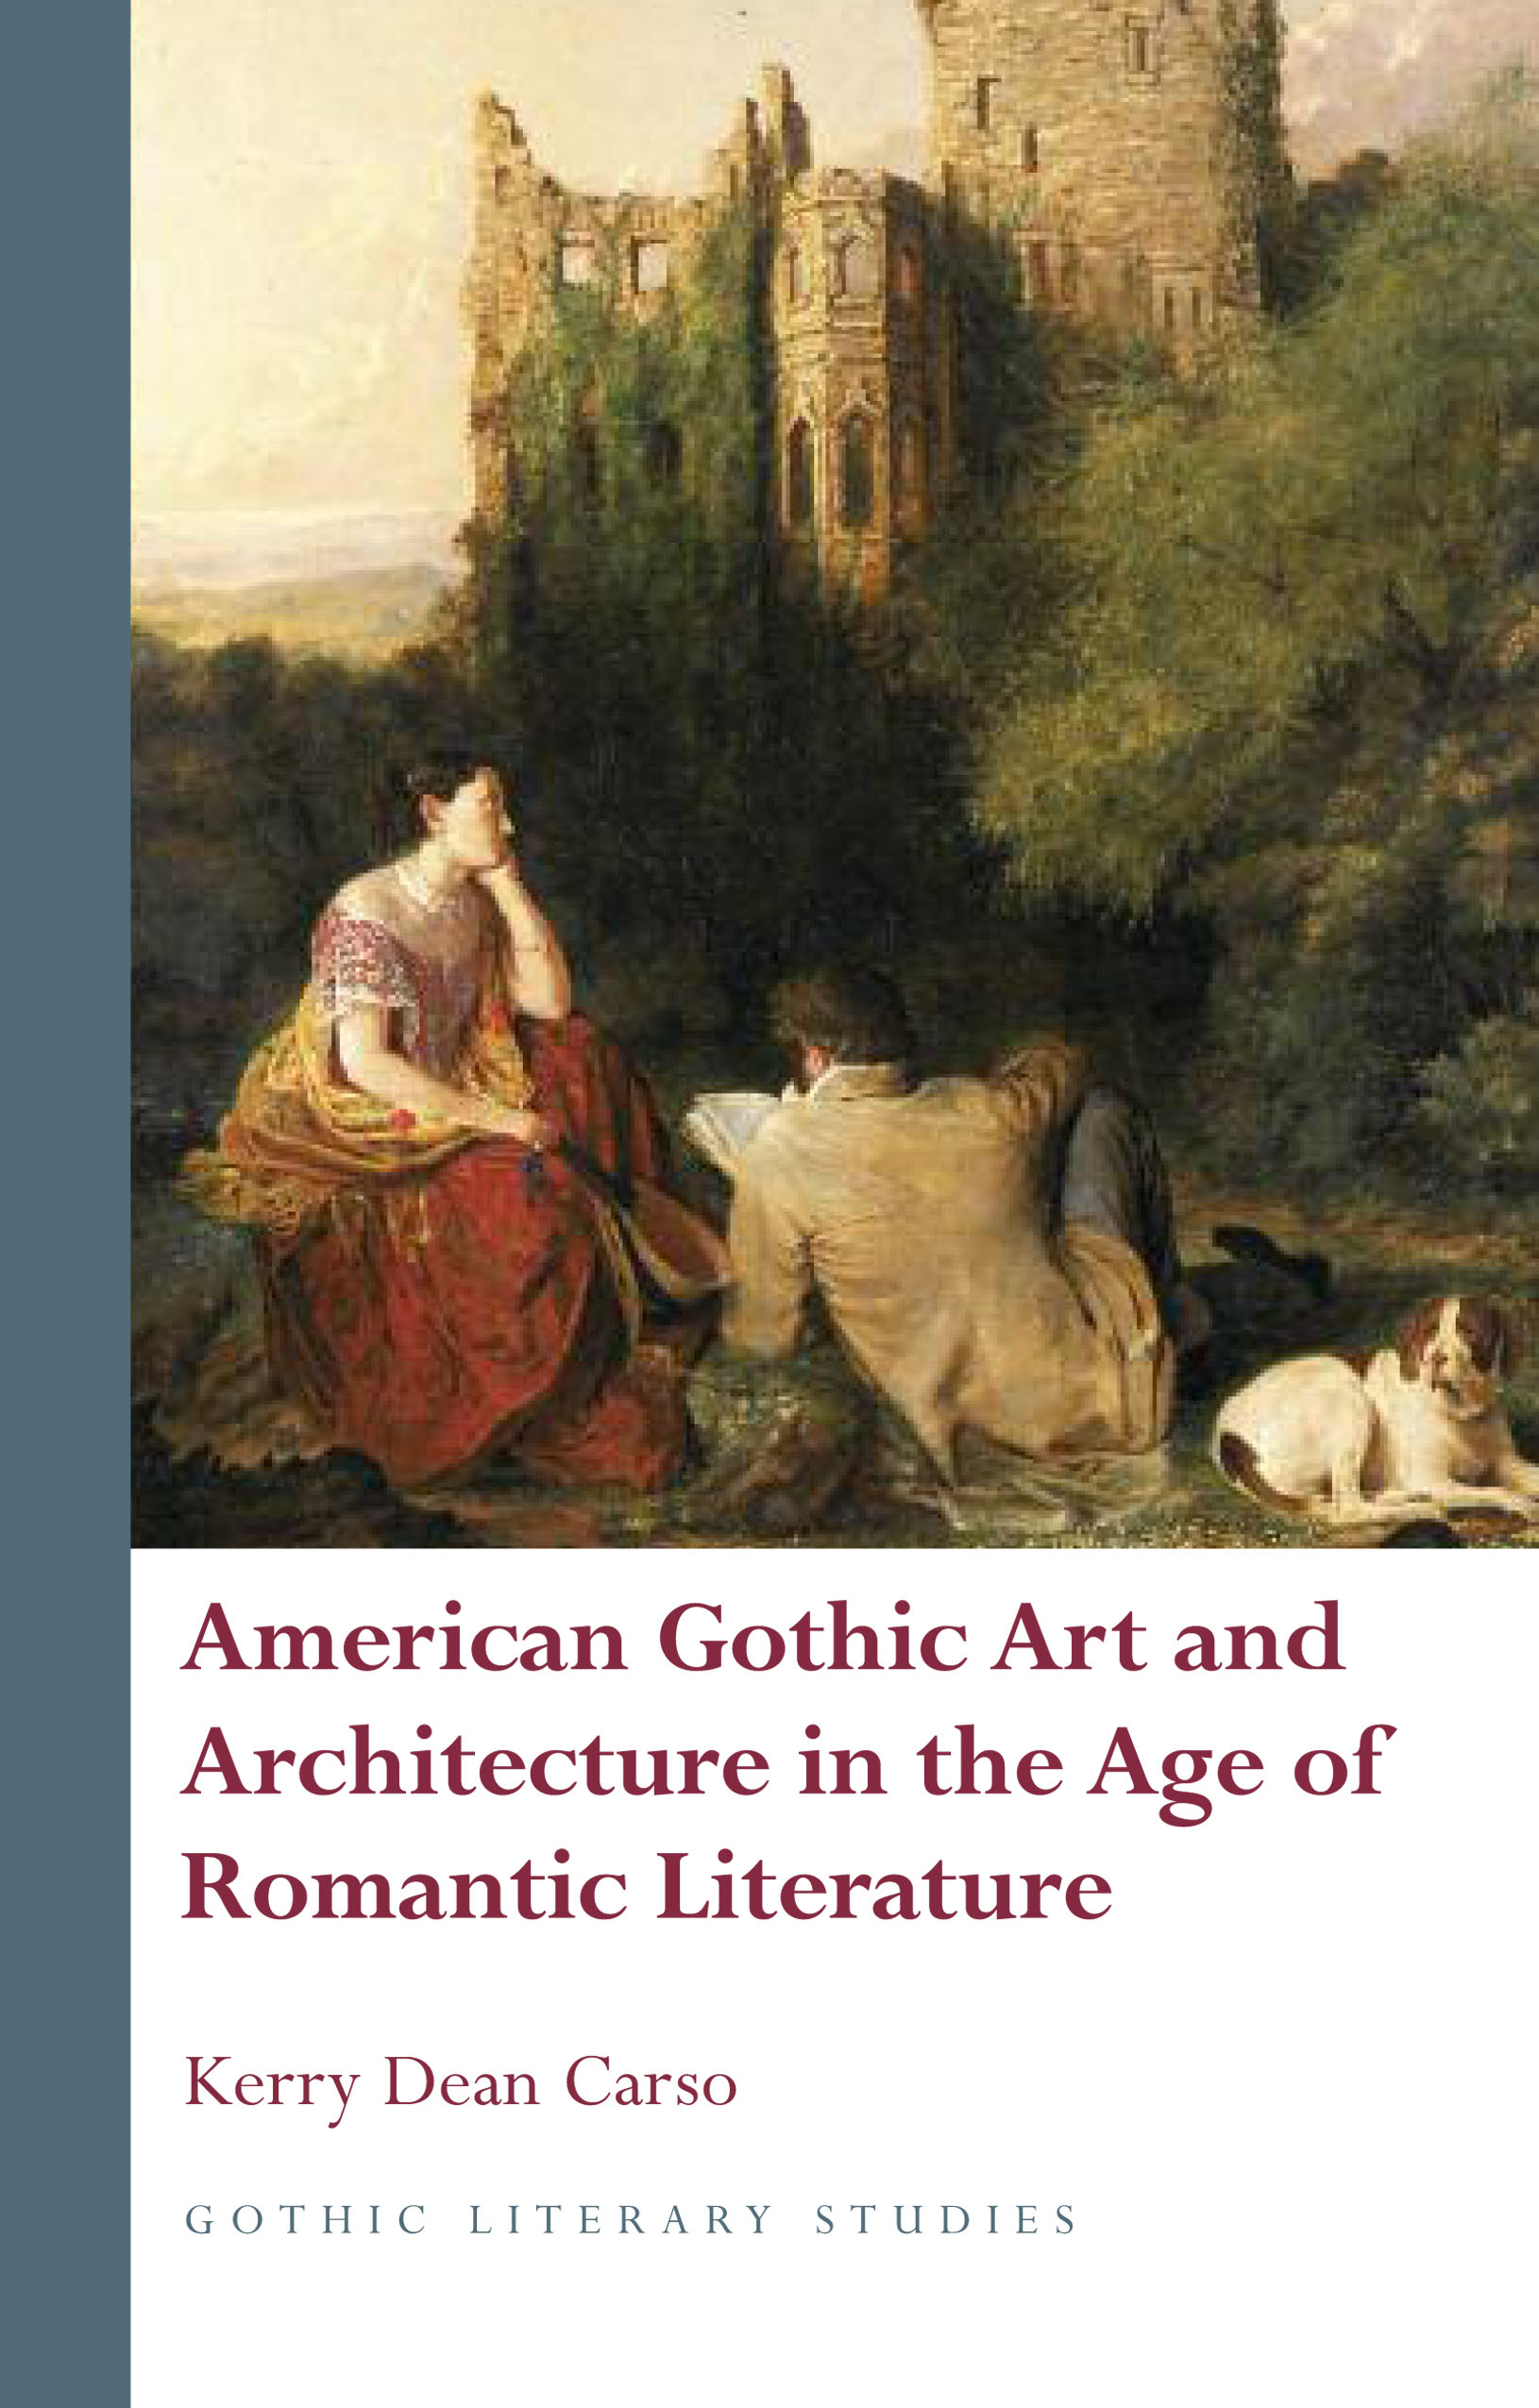 Art History Professor Releases New Book On Gothic And Romantic